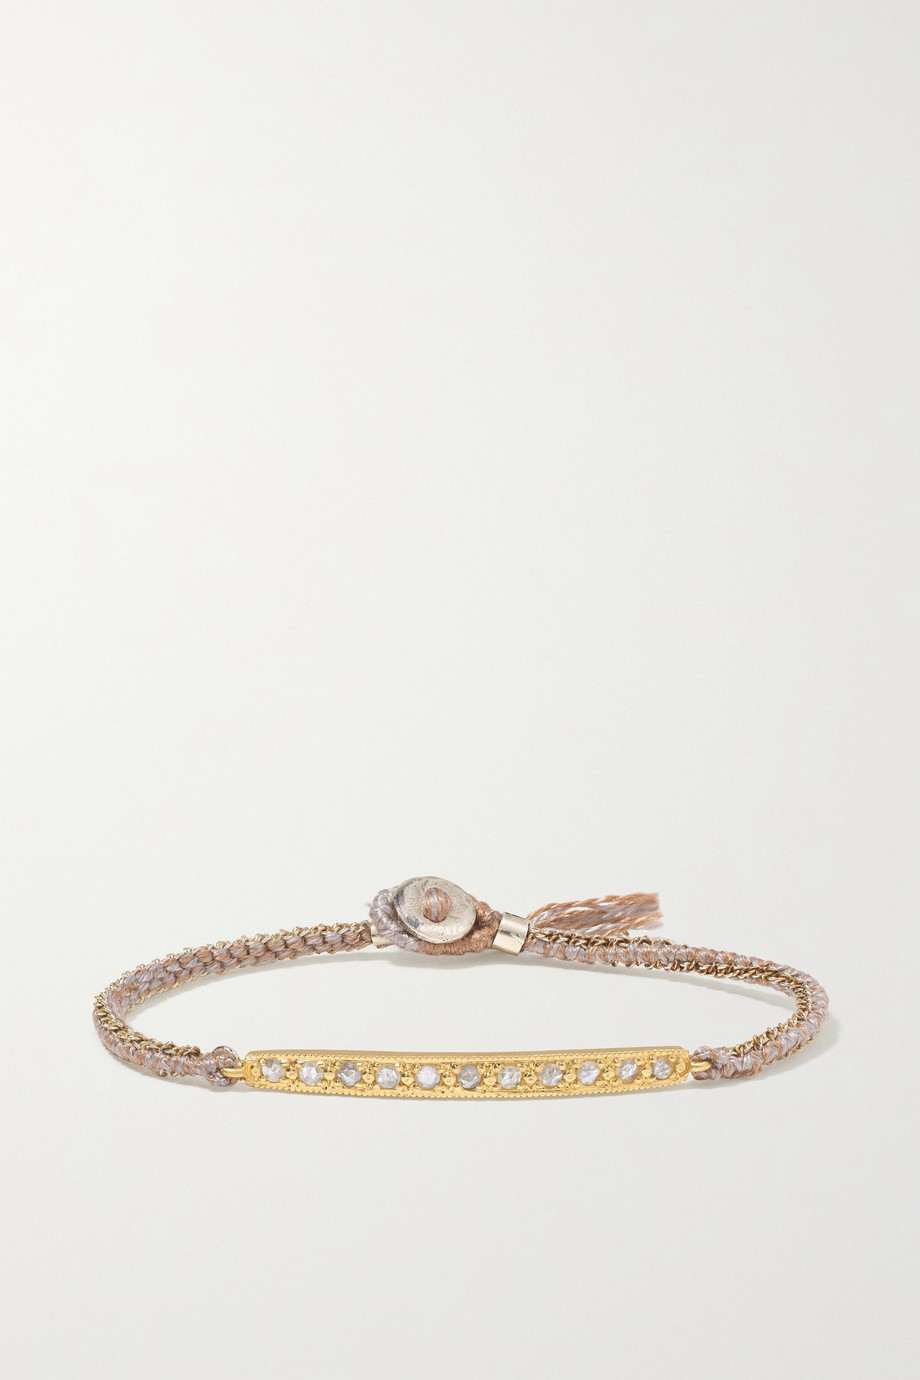 Brooke Gregson 14-karat gold, sterling silver, silk and diamond bracelet